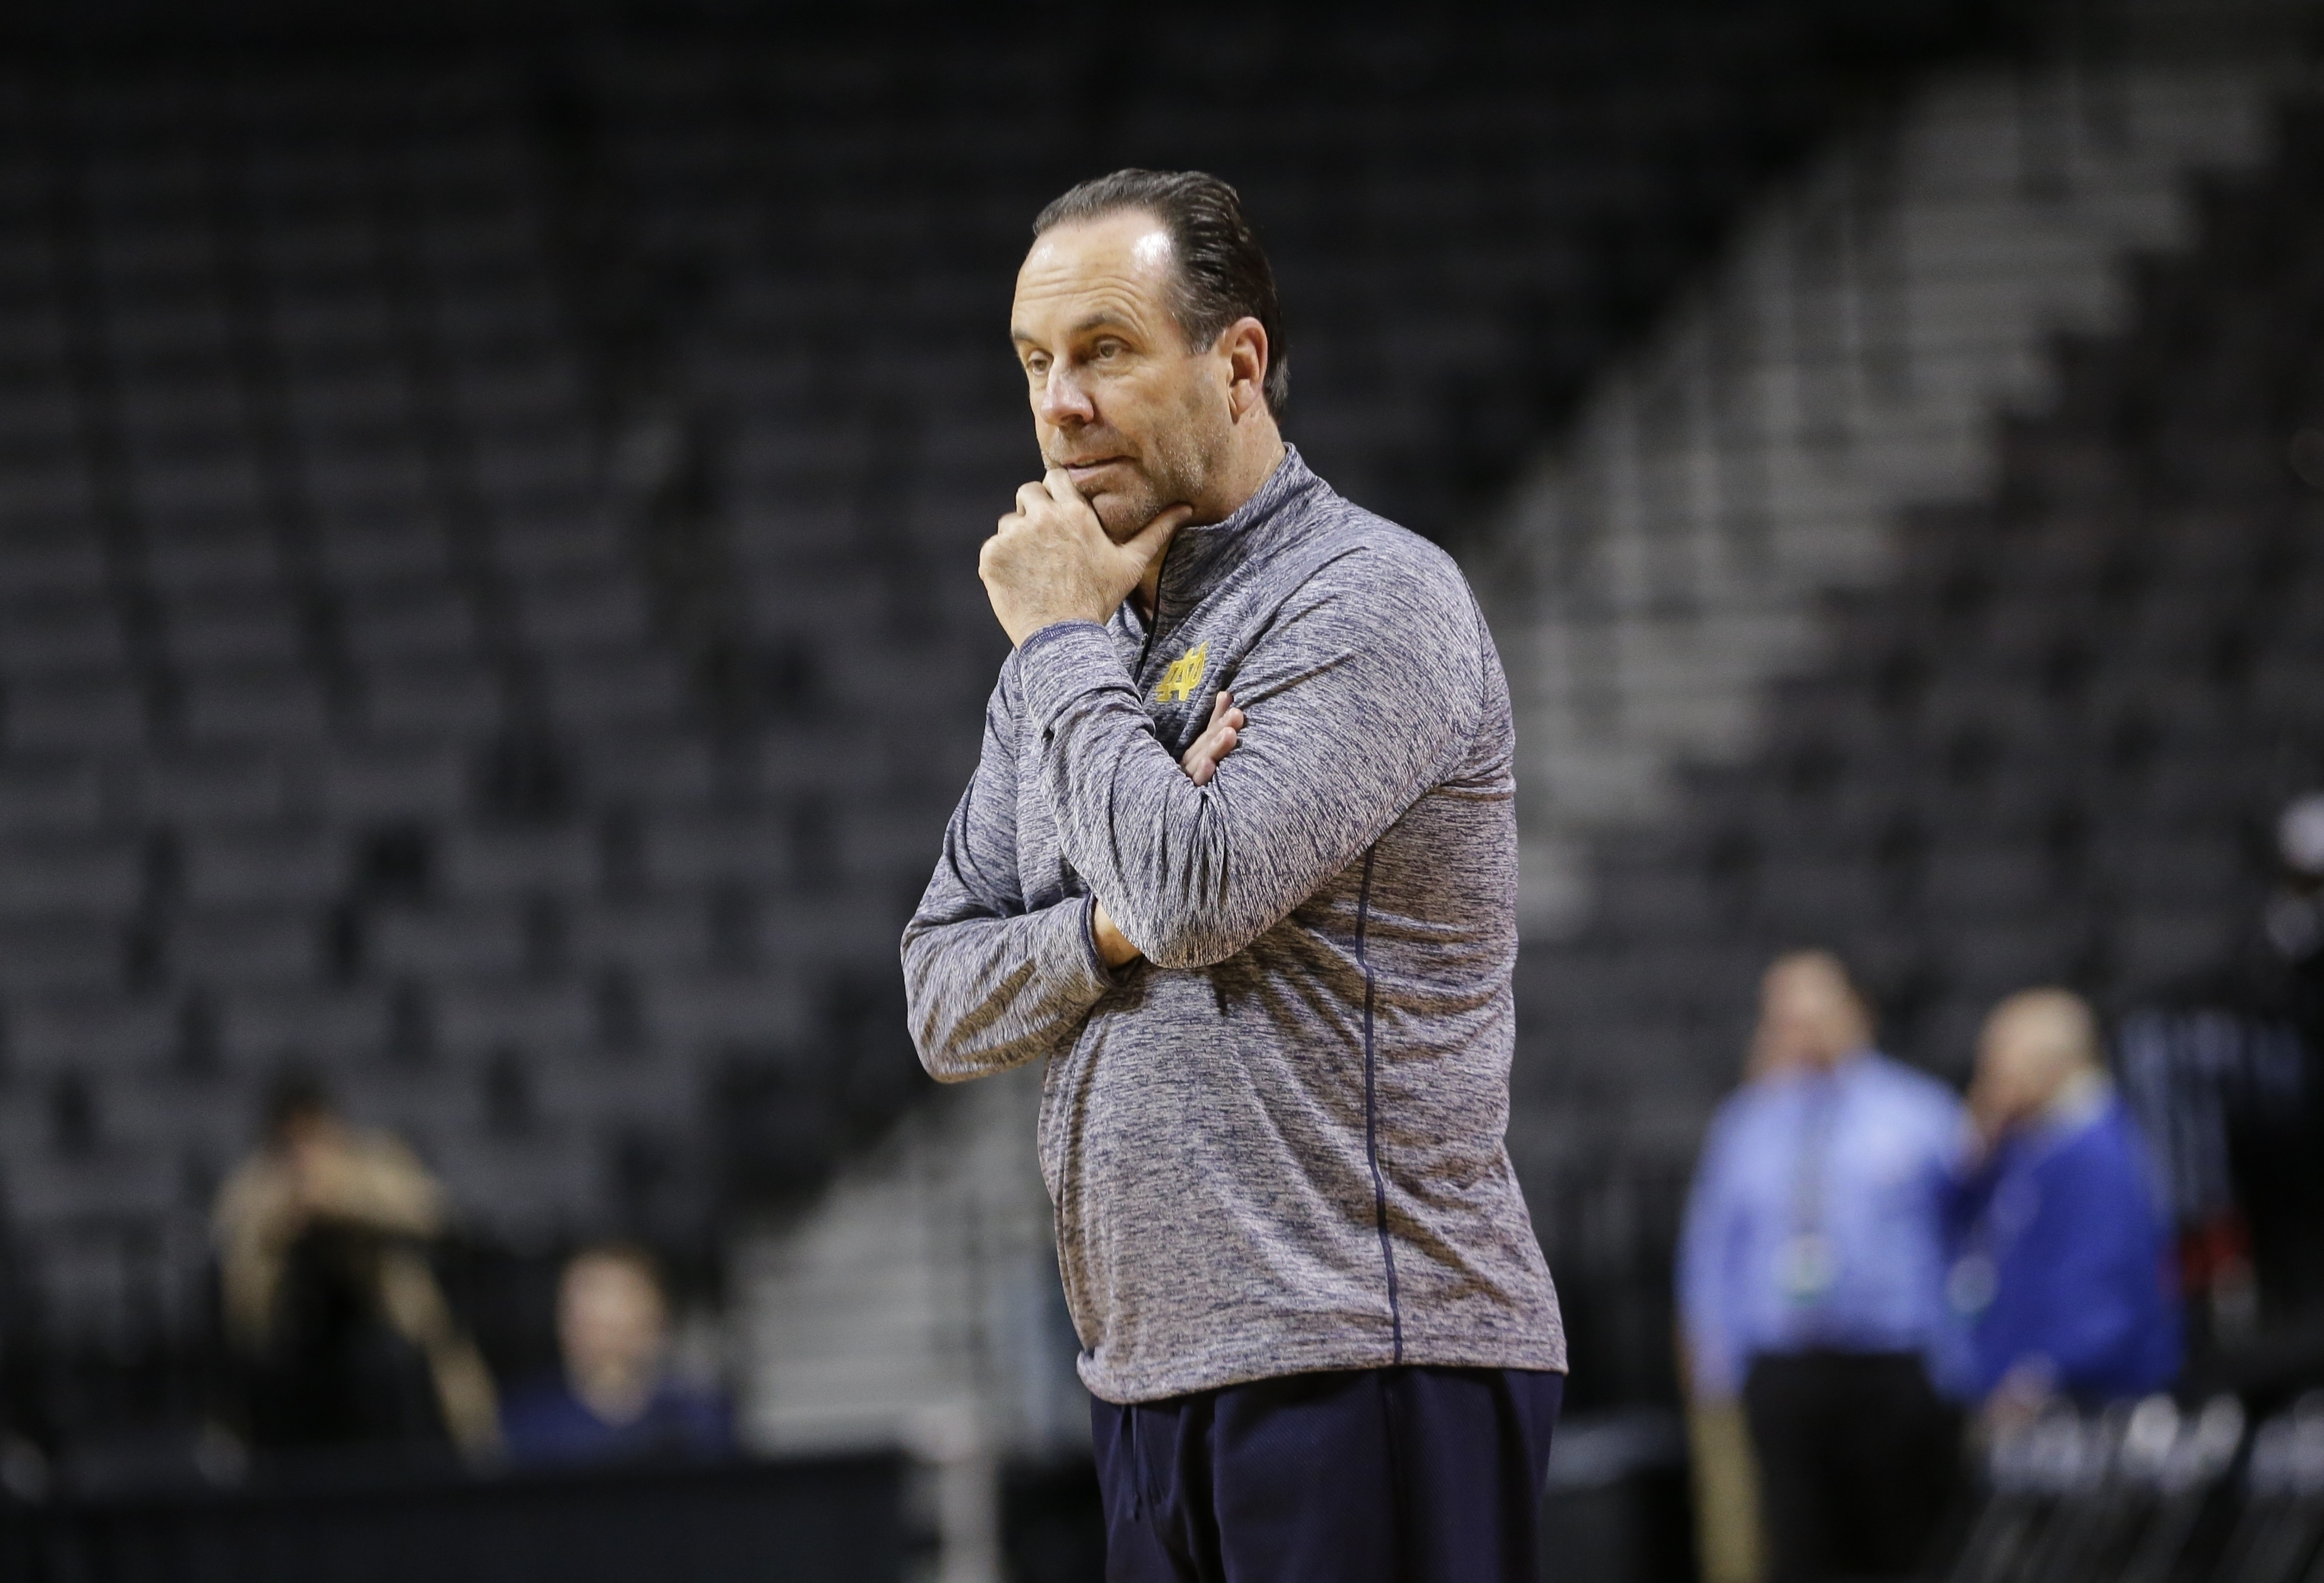 Notre Dame Fighting head coach Mike Brey watches his team during practice for a first-round men's college basketball game against Stephen F. Austin in the NCAA Tournament on Thursday, March 17, 2016, in New York. (AP Photo/Frank Franklin II)